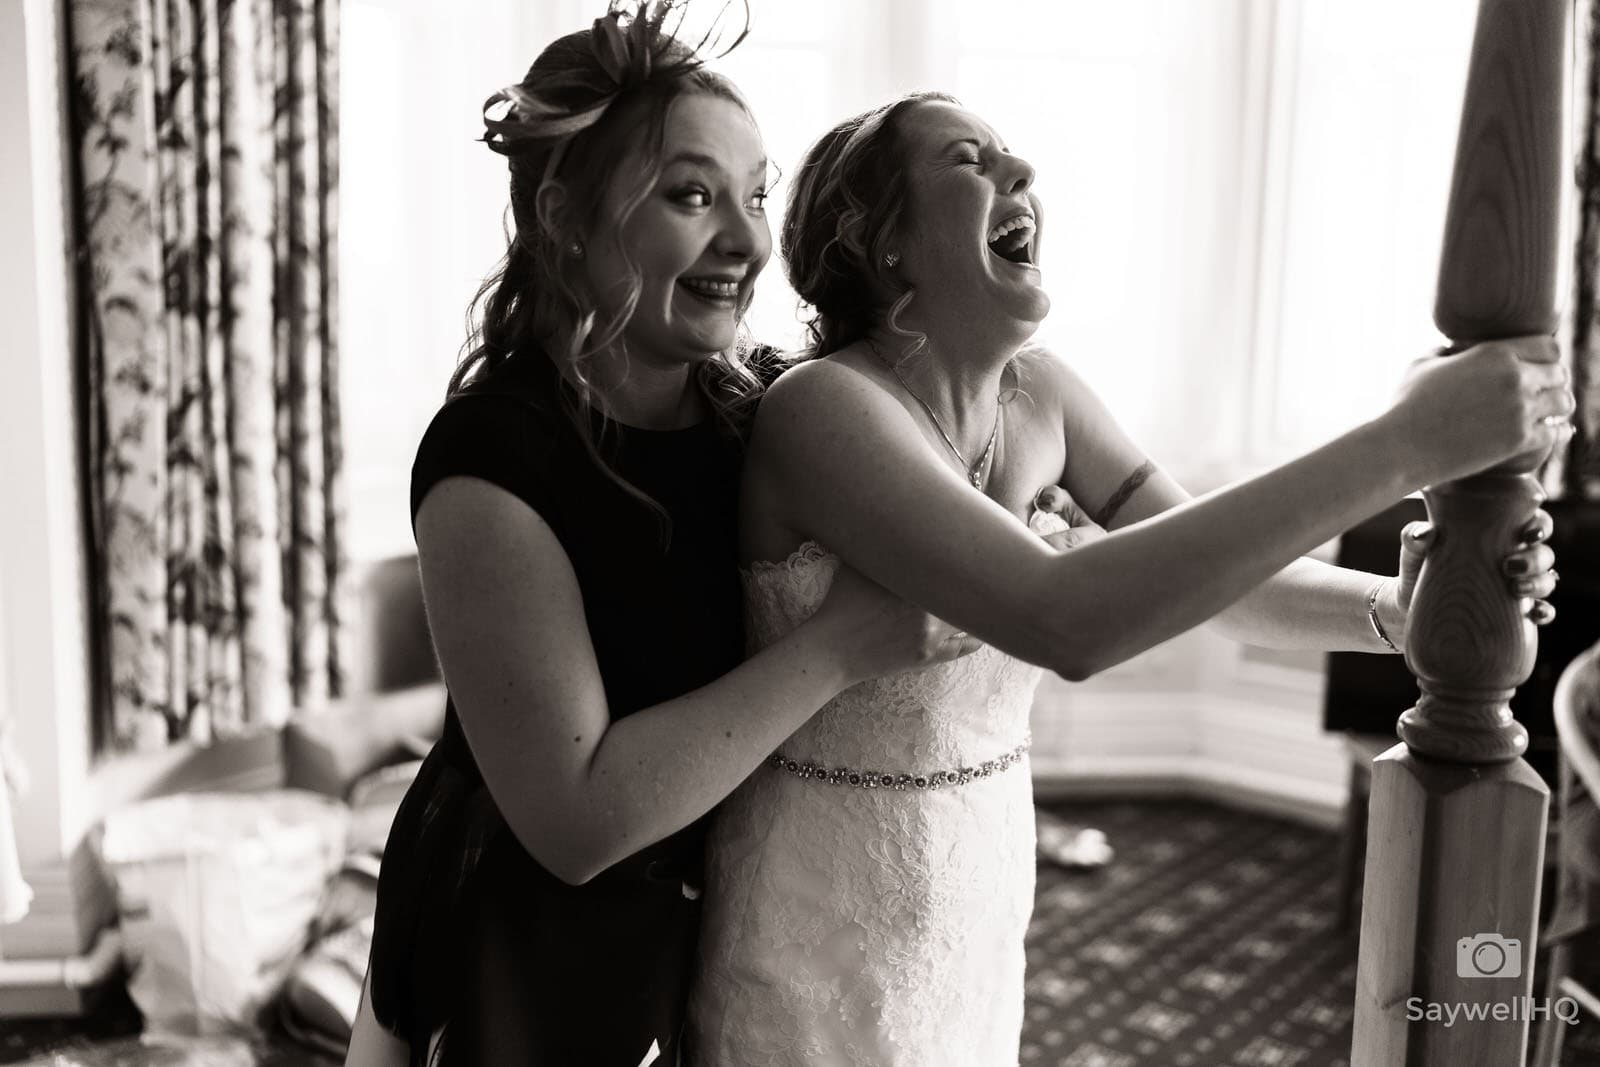 Bestwood Lodge wedding photography Bride and bridesmaid having fun getting in to the wedding dress at a wedding at the bestwood lodge hotel